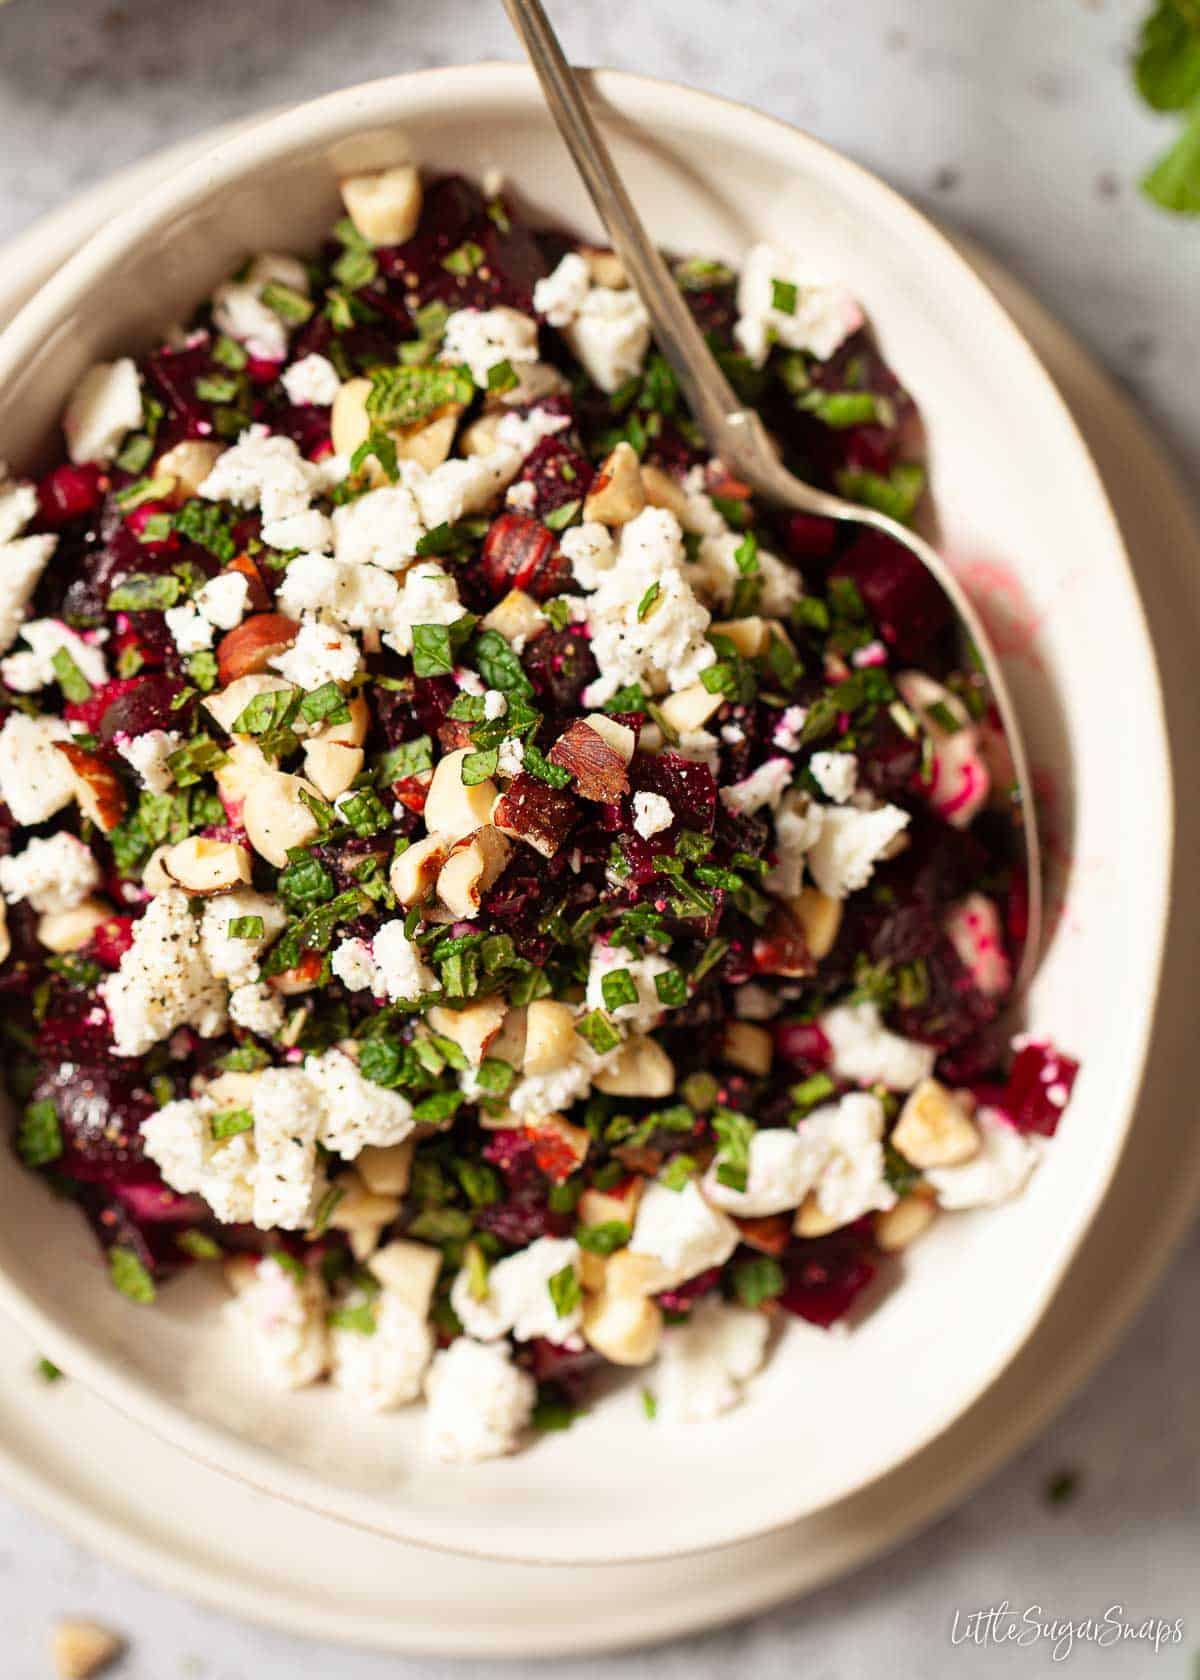 A bowl of mixed beetroot salad featuring cubed beets, crumbled feta, chopped mint and chopped nuts.